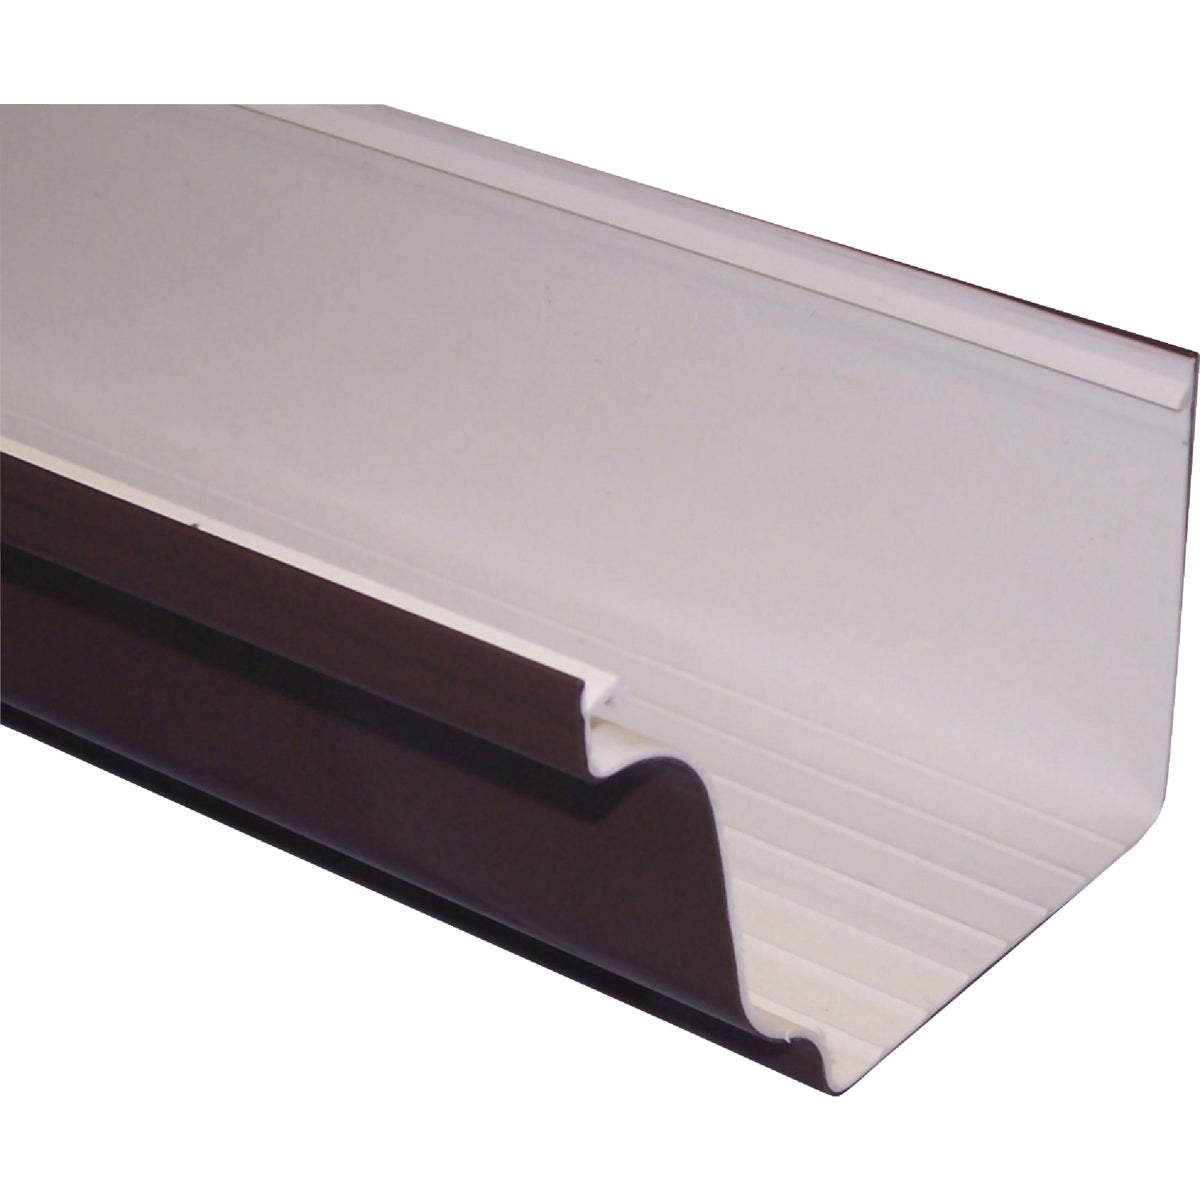 BRN REPLA-K GUTTER - AB100K by Genova Products